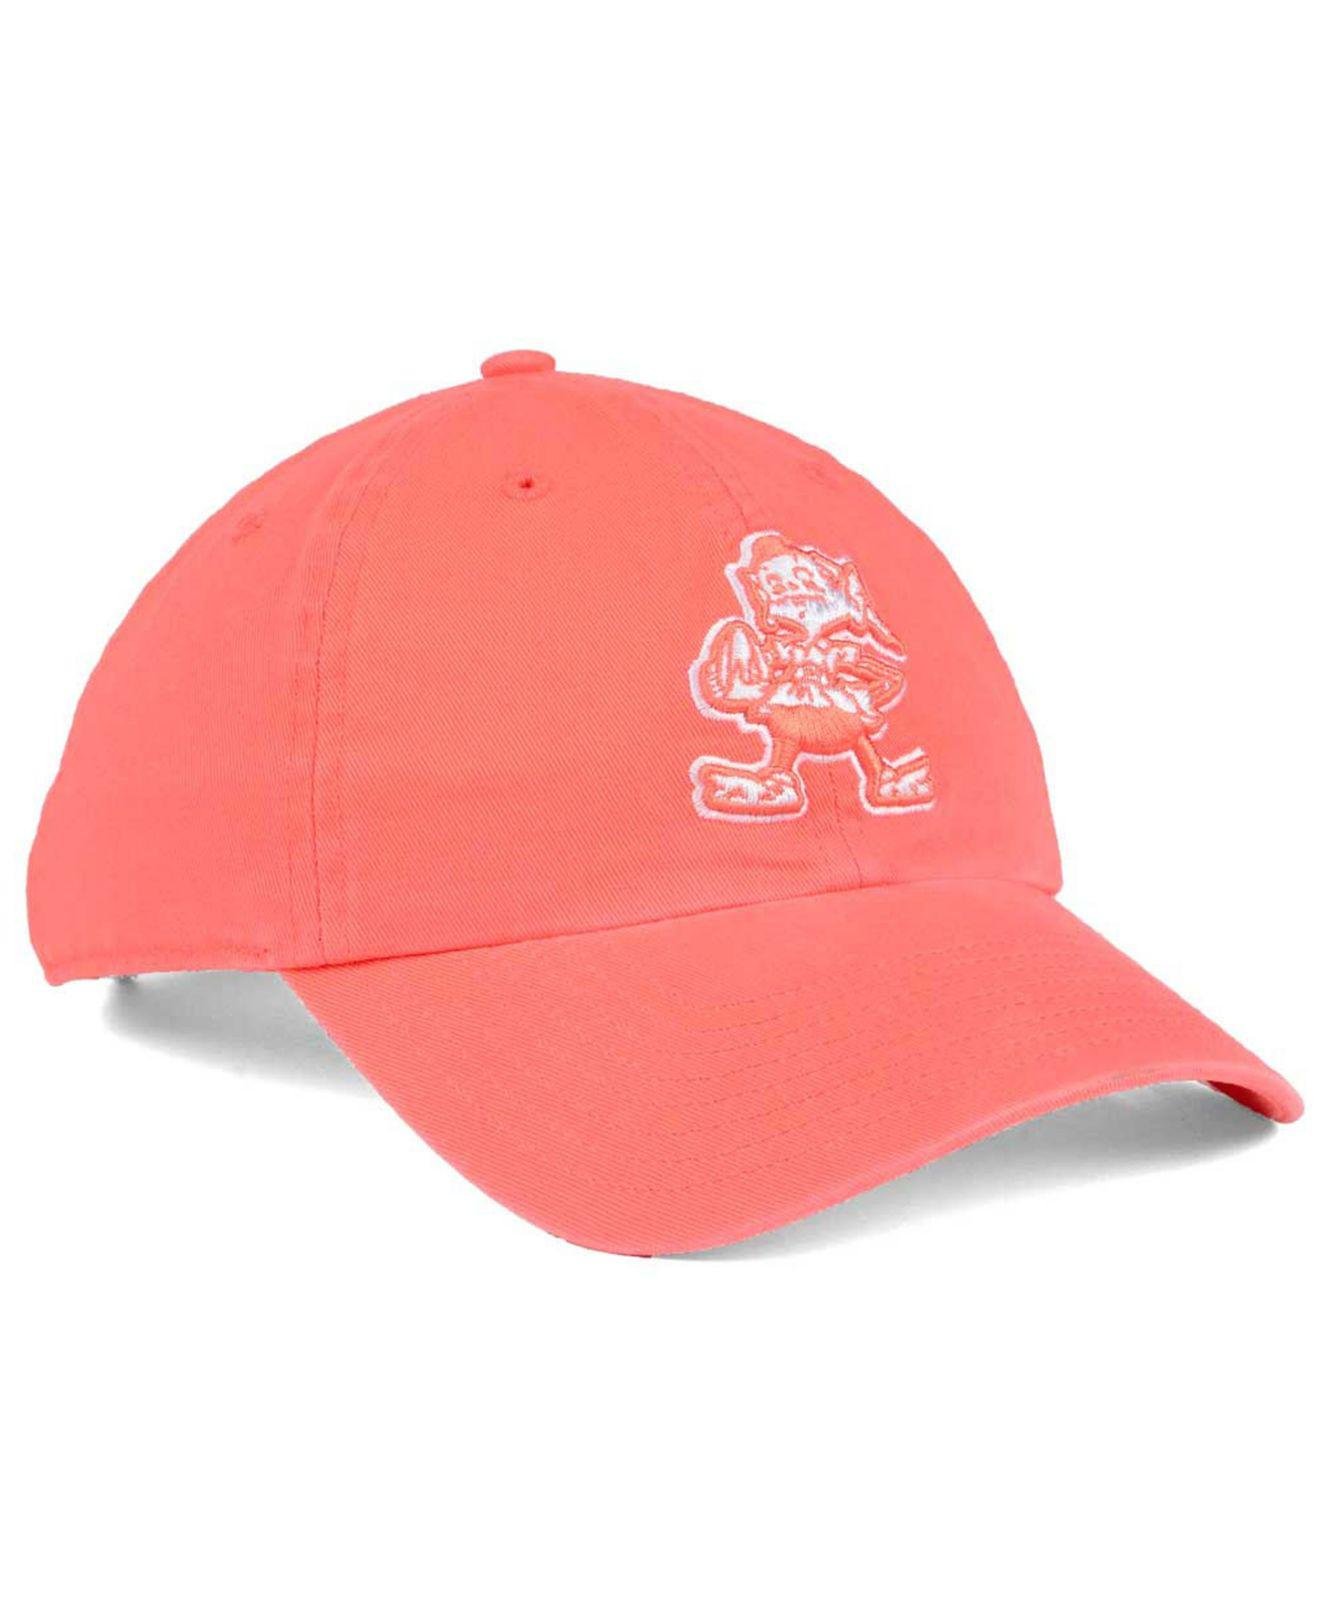 official photos d8706 f3424 Lyst - 47 Brand Pastel Clean Up Cap in Pink